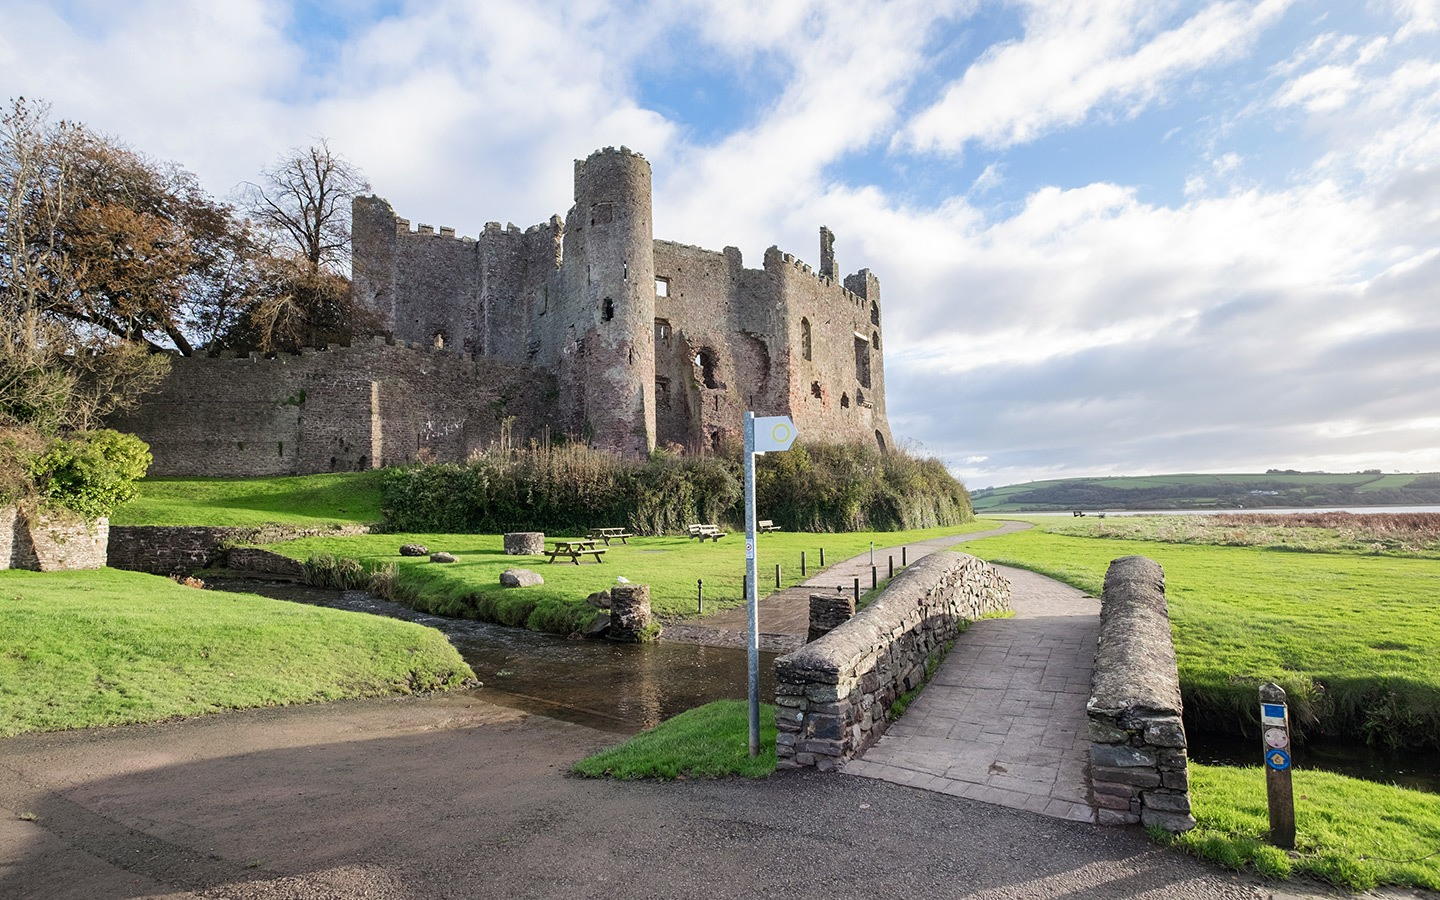 Laugharne castle in South Wales